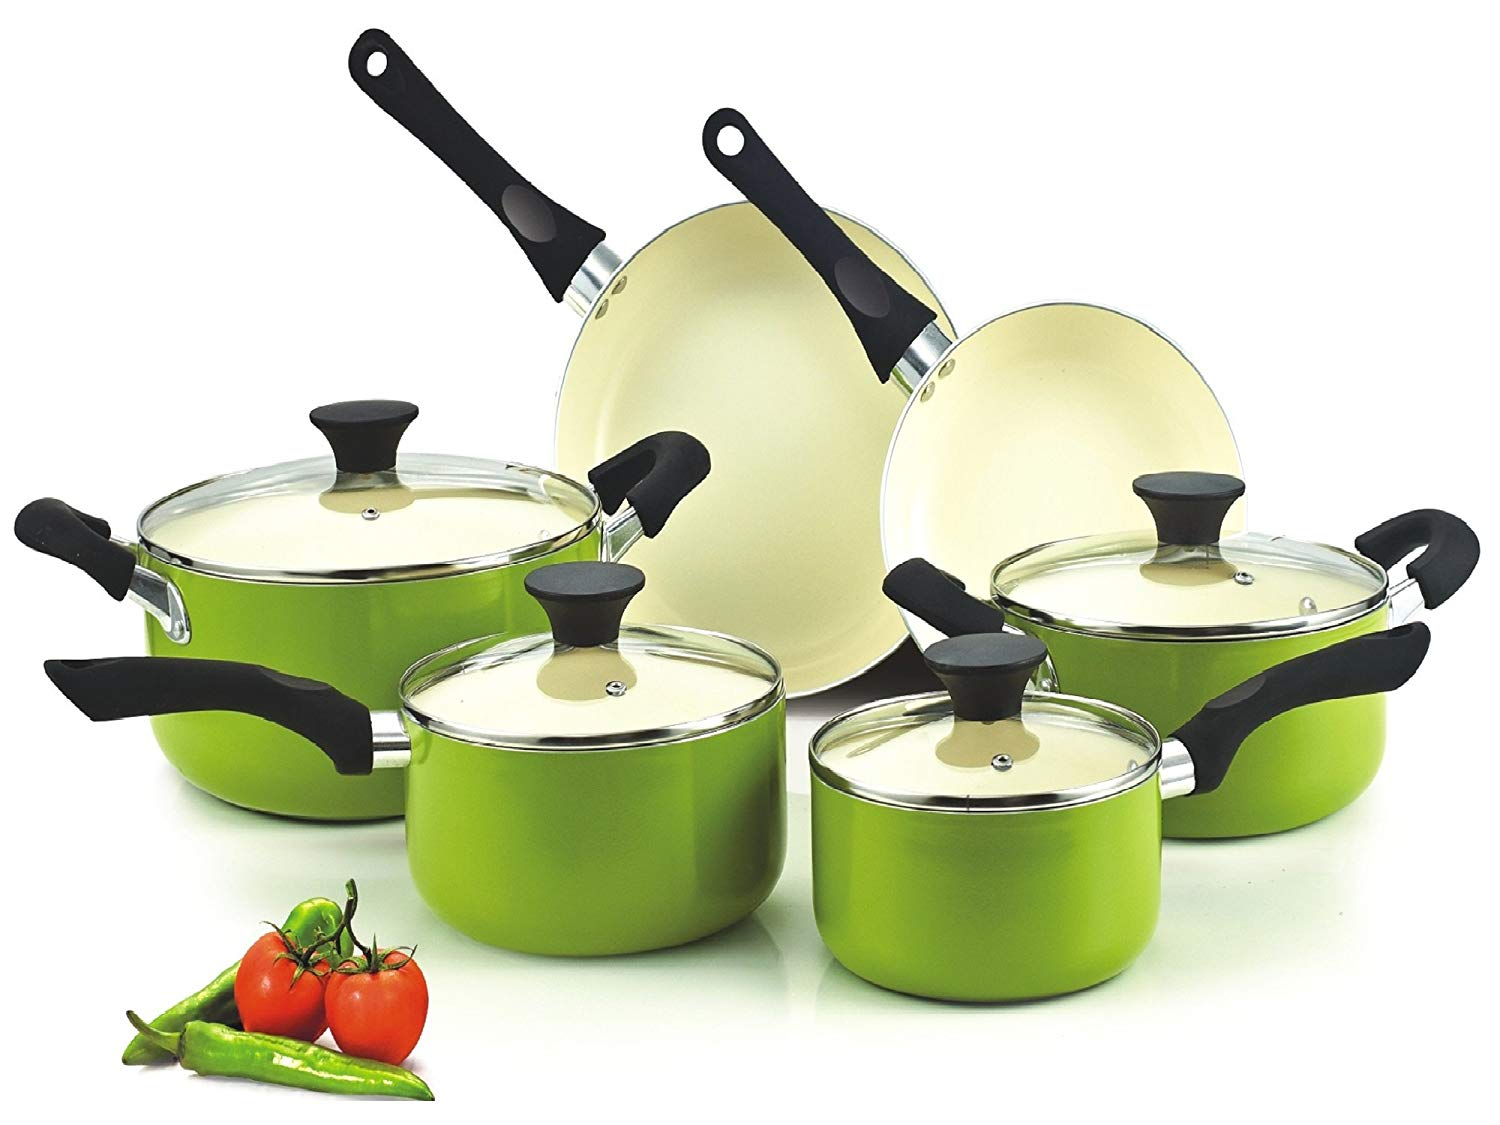 Cook N Home NC-00358 Nonstick Ceramic Cookware Set